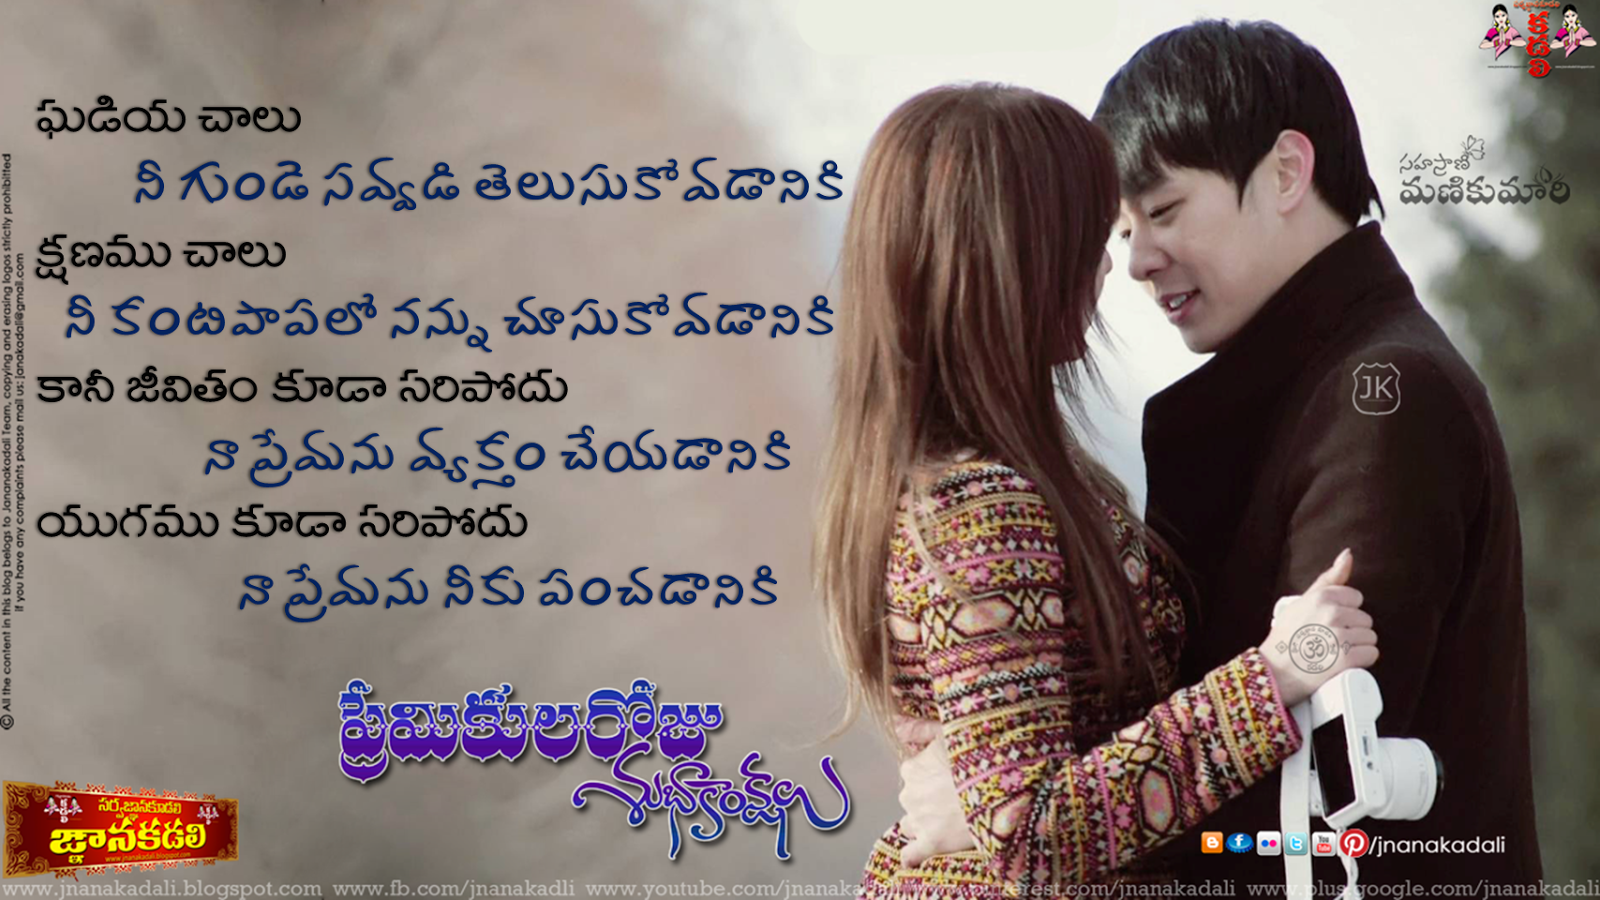 valentines day quotes for girlfriend in telugu - Nice Telugu Valentines Day Wishes with Love Quotes